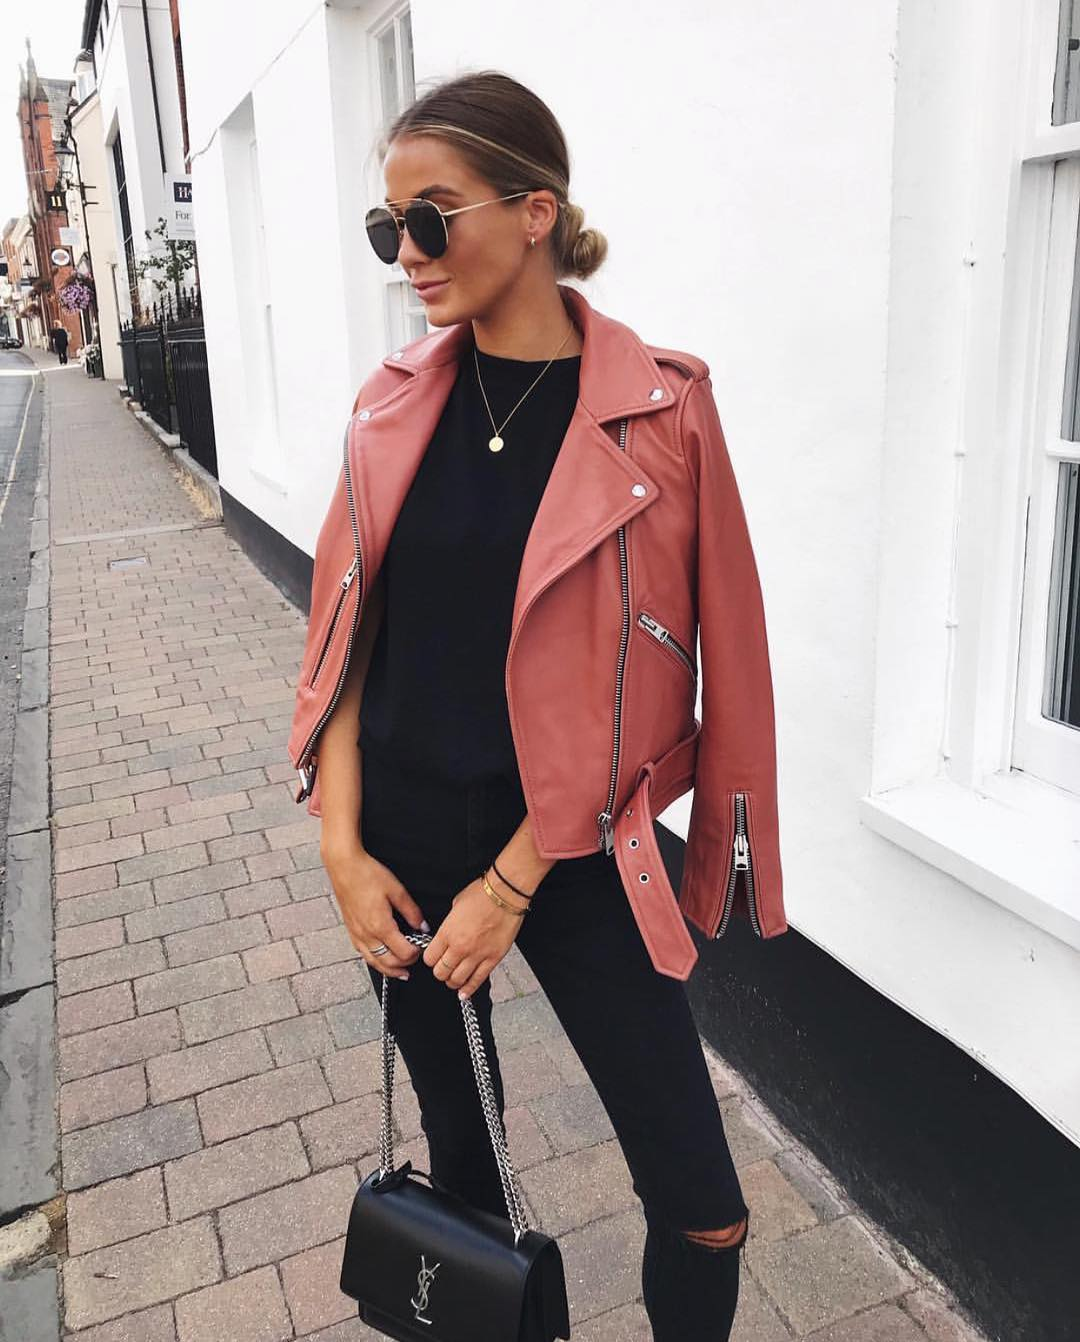 Pink Leather Jacket And All In Black Outfit Idea For Fall 2020